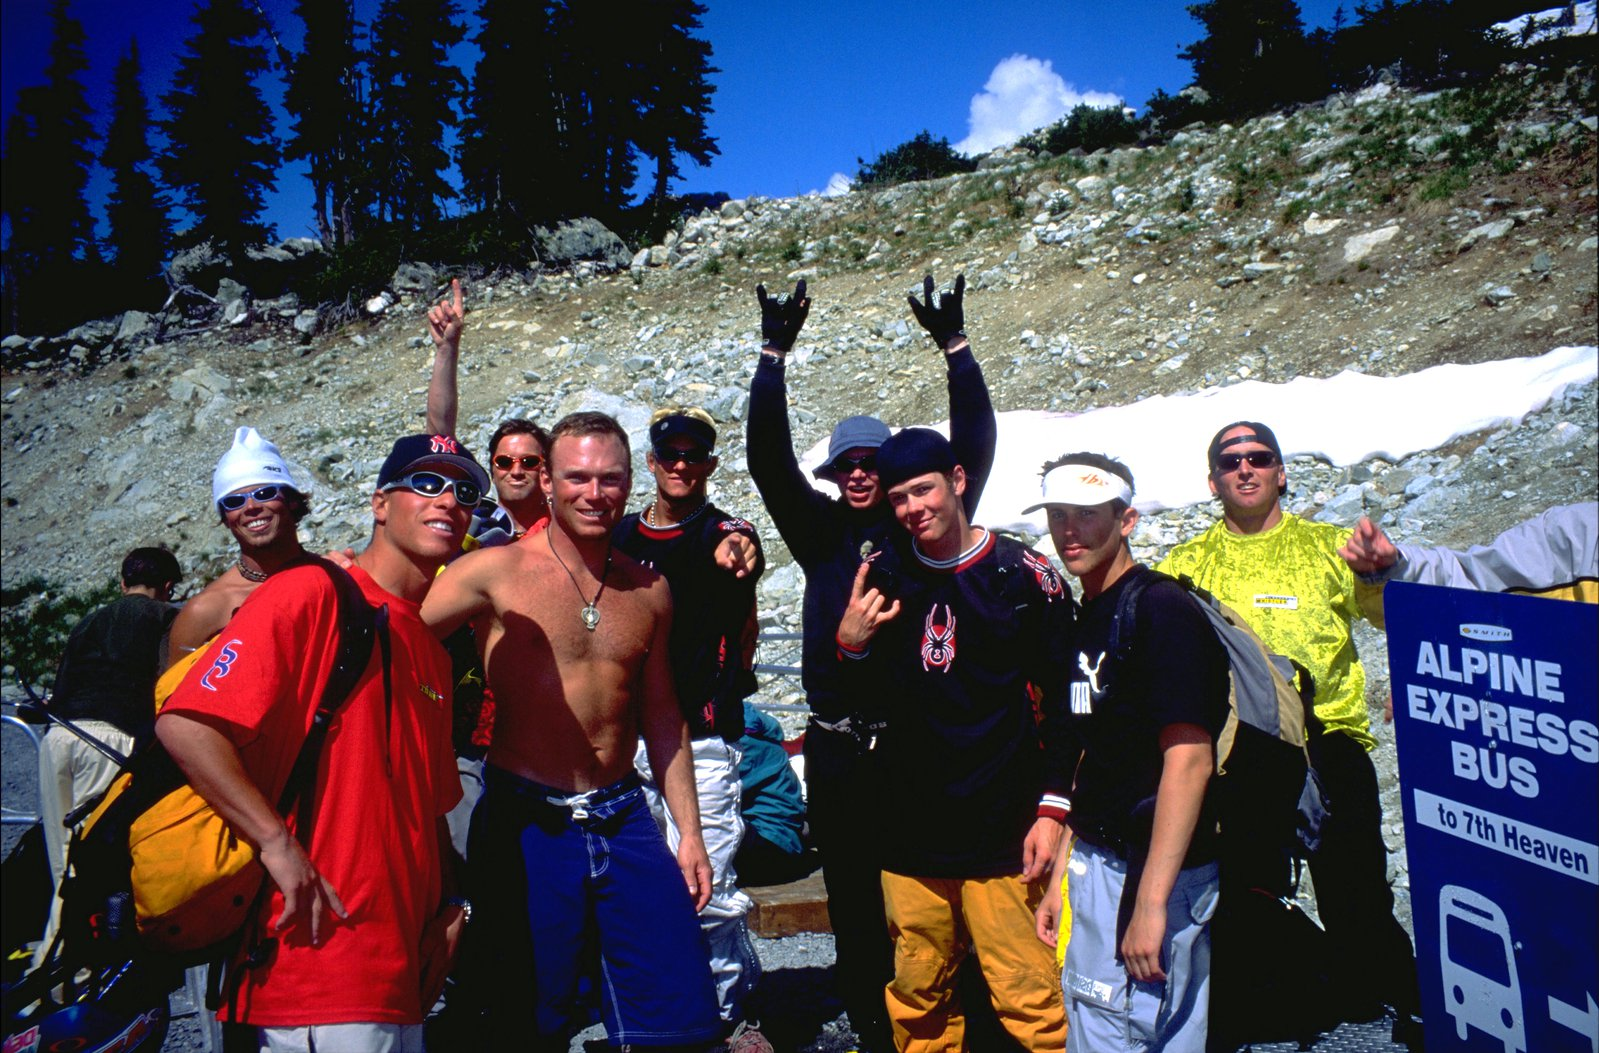 CR Johnson at The Camp of Champions 1999